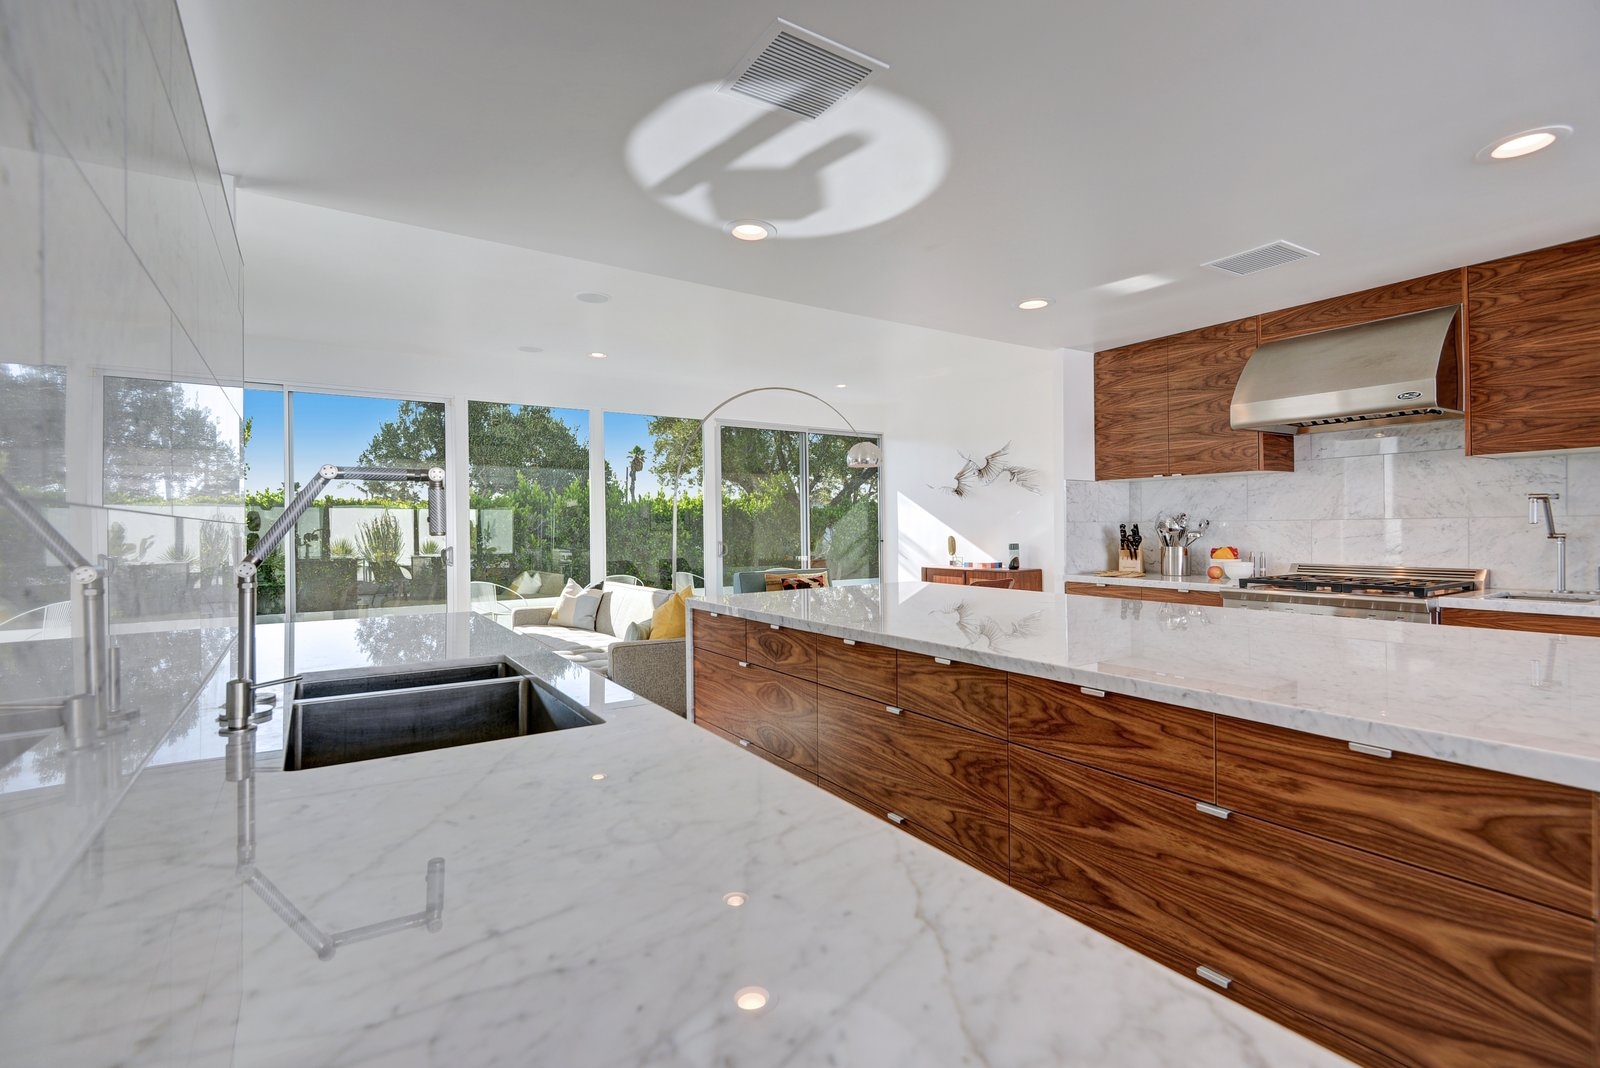 Kitchen, Wood, Refrigerator, Marble, Recessed, Drop In, and Stone Tile To keep the home as open as possible, elements like refrigerator drawers were selected in lieu of traditional appliances.  Kitchen Wood Stone Tile Photos from Donald Wexler Himself Helped Renovate This Palm Springs Prefab Rental